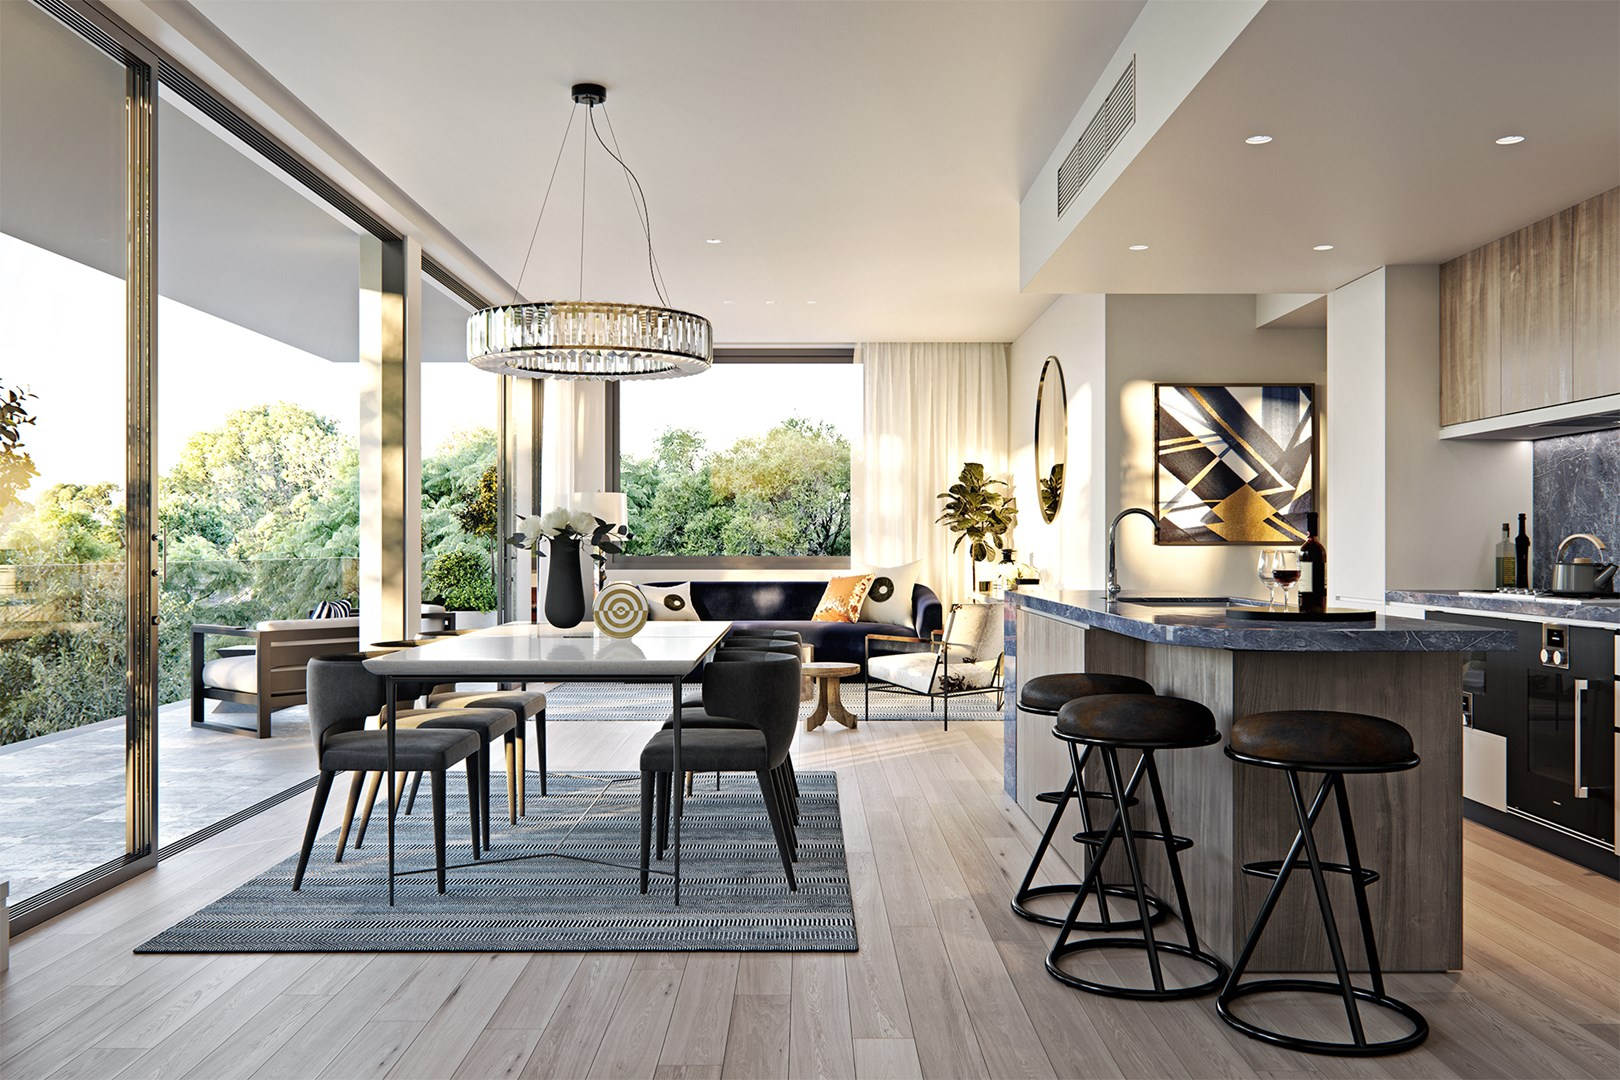 3 Bedroom Penthouse with Parking